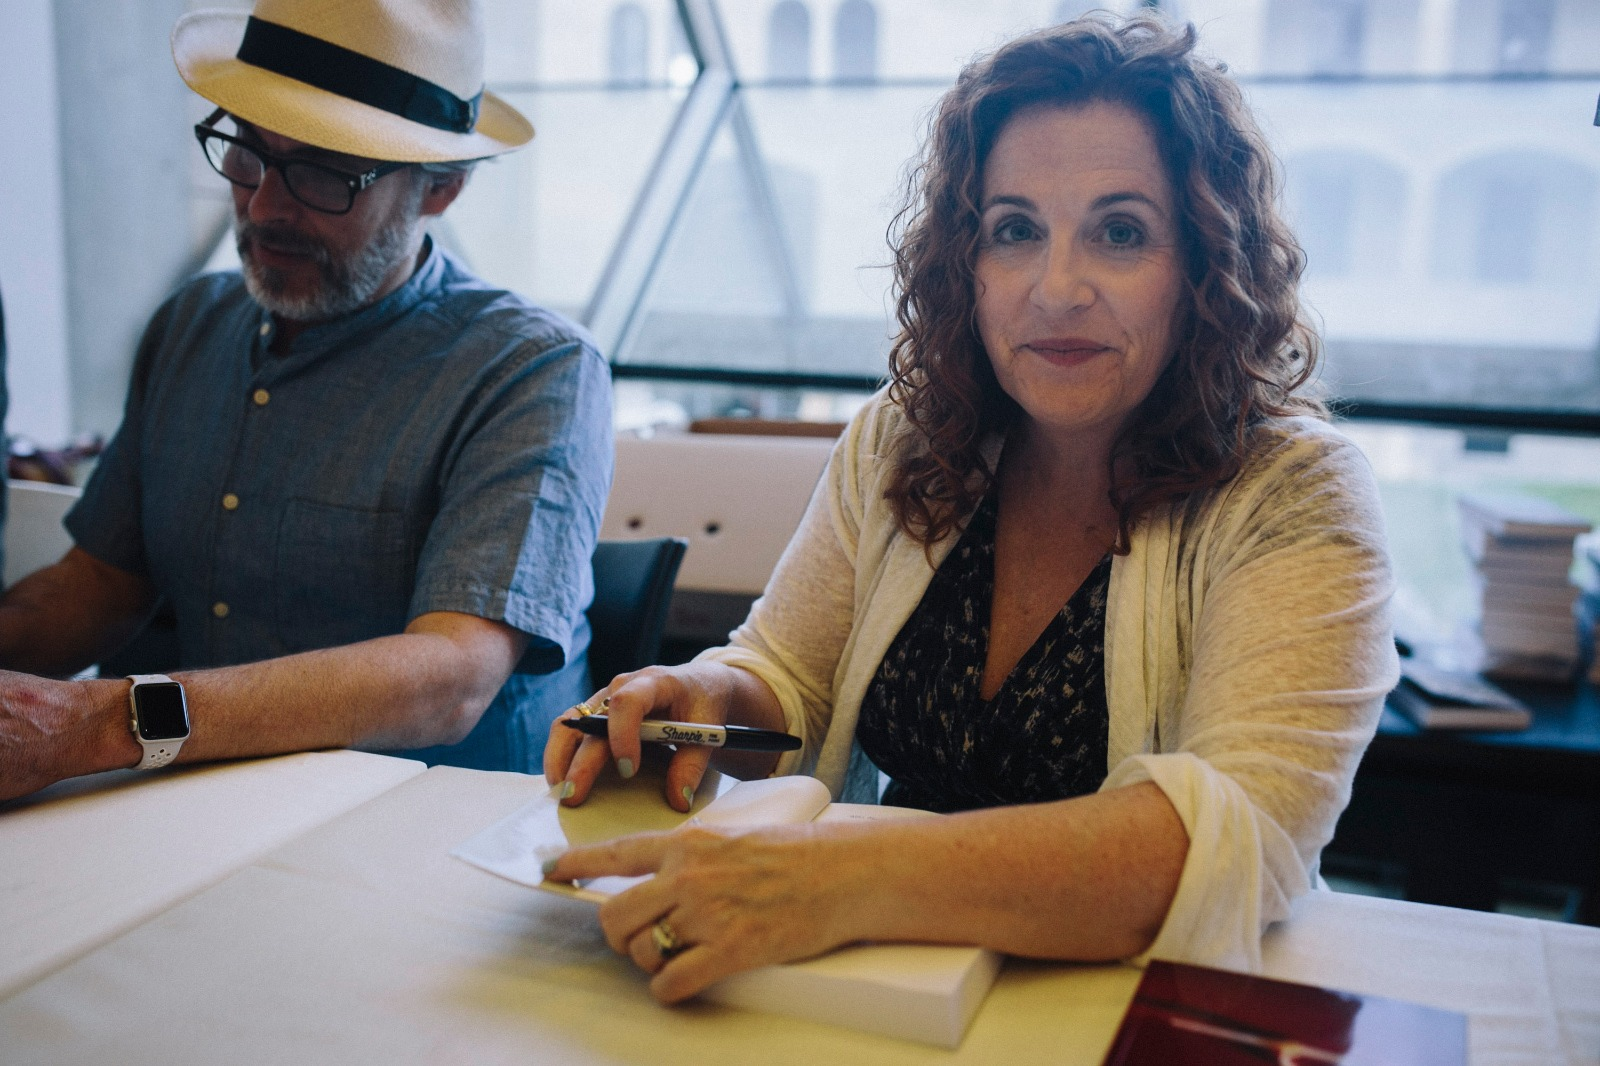 Authors Ayelet Waldman (right) and Michael Chabon sign copies of their new book, Kingdom of Olives and Ash, at a book launch event in Jerusalem. (Breaking the Silence)